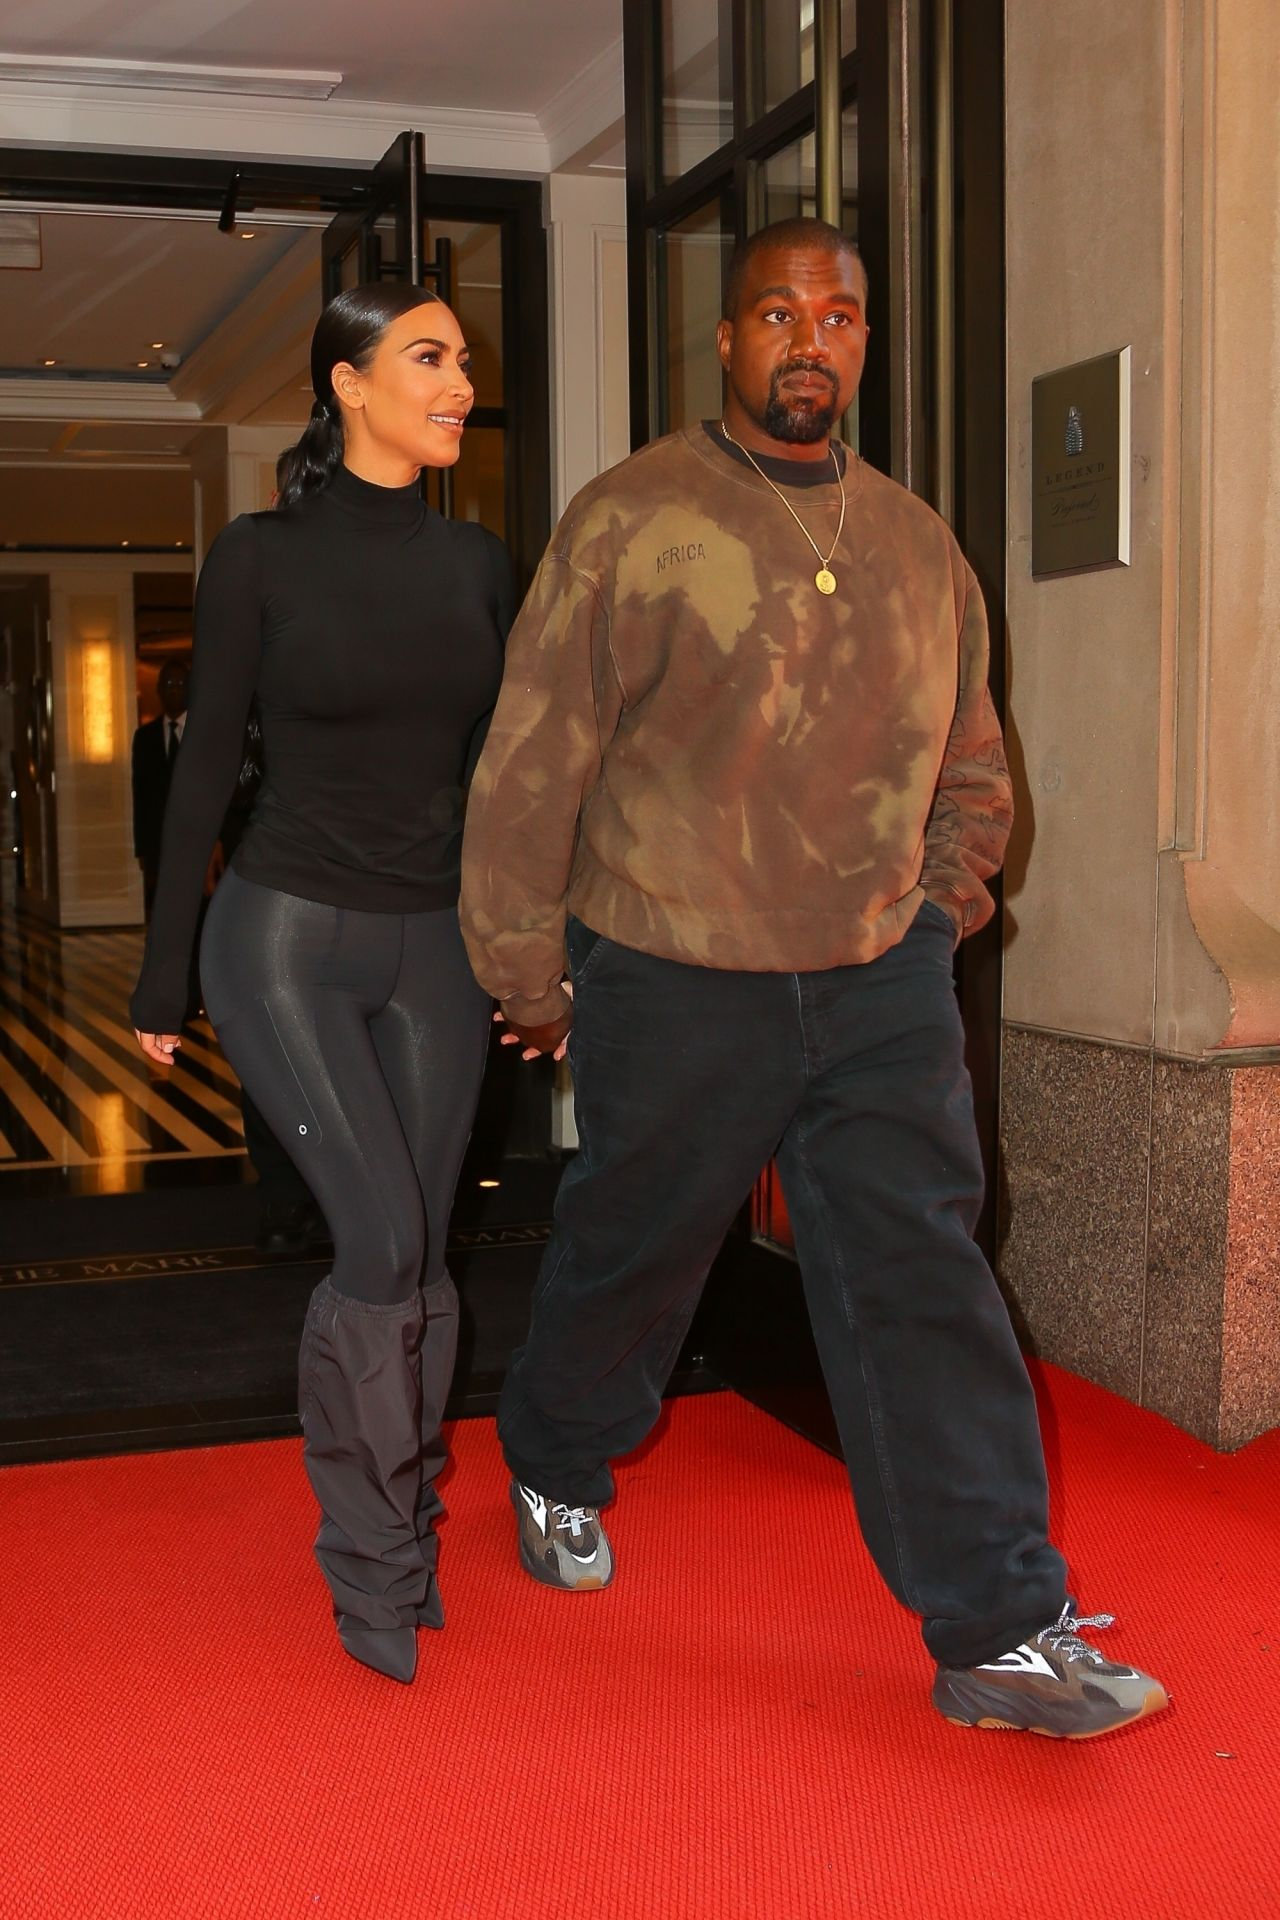 61a046516a46 Kim Kardashian and Kanye West - Exit Their Hotel in New York 05/07/2019